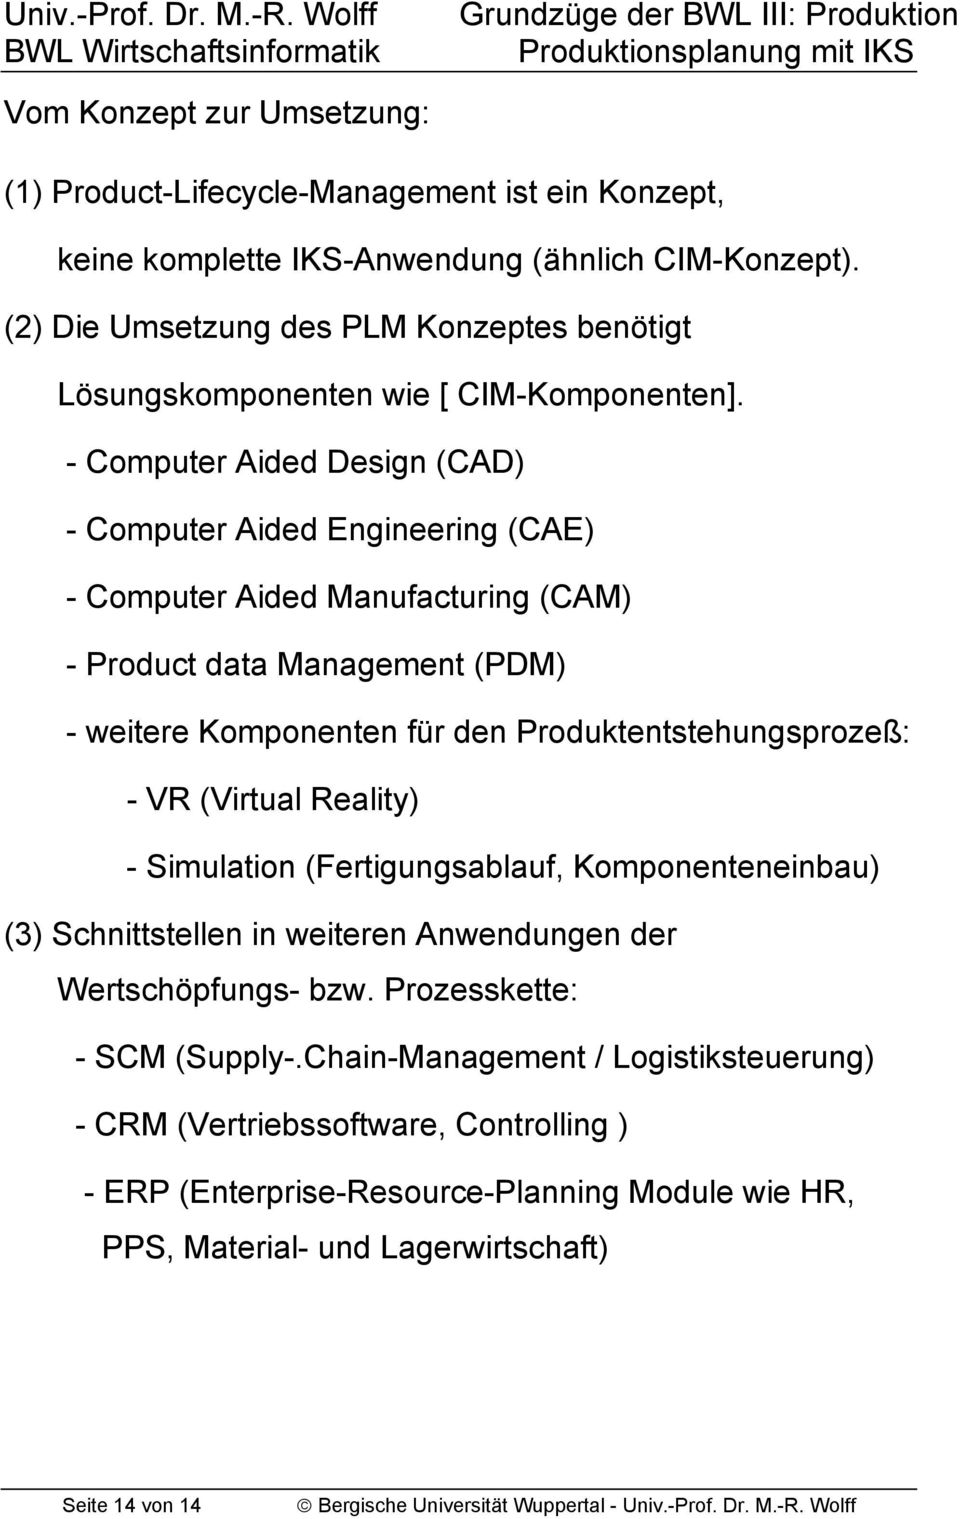 - Computer Aided Design (CAD) - Computer Aided Engineering (CAE) - Computer Aided Manufacturing (CAM) - Product data Management (PDM) - weitere Komponenten für den Produktentstehungsprozeß: